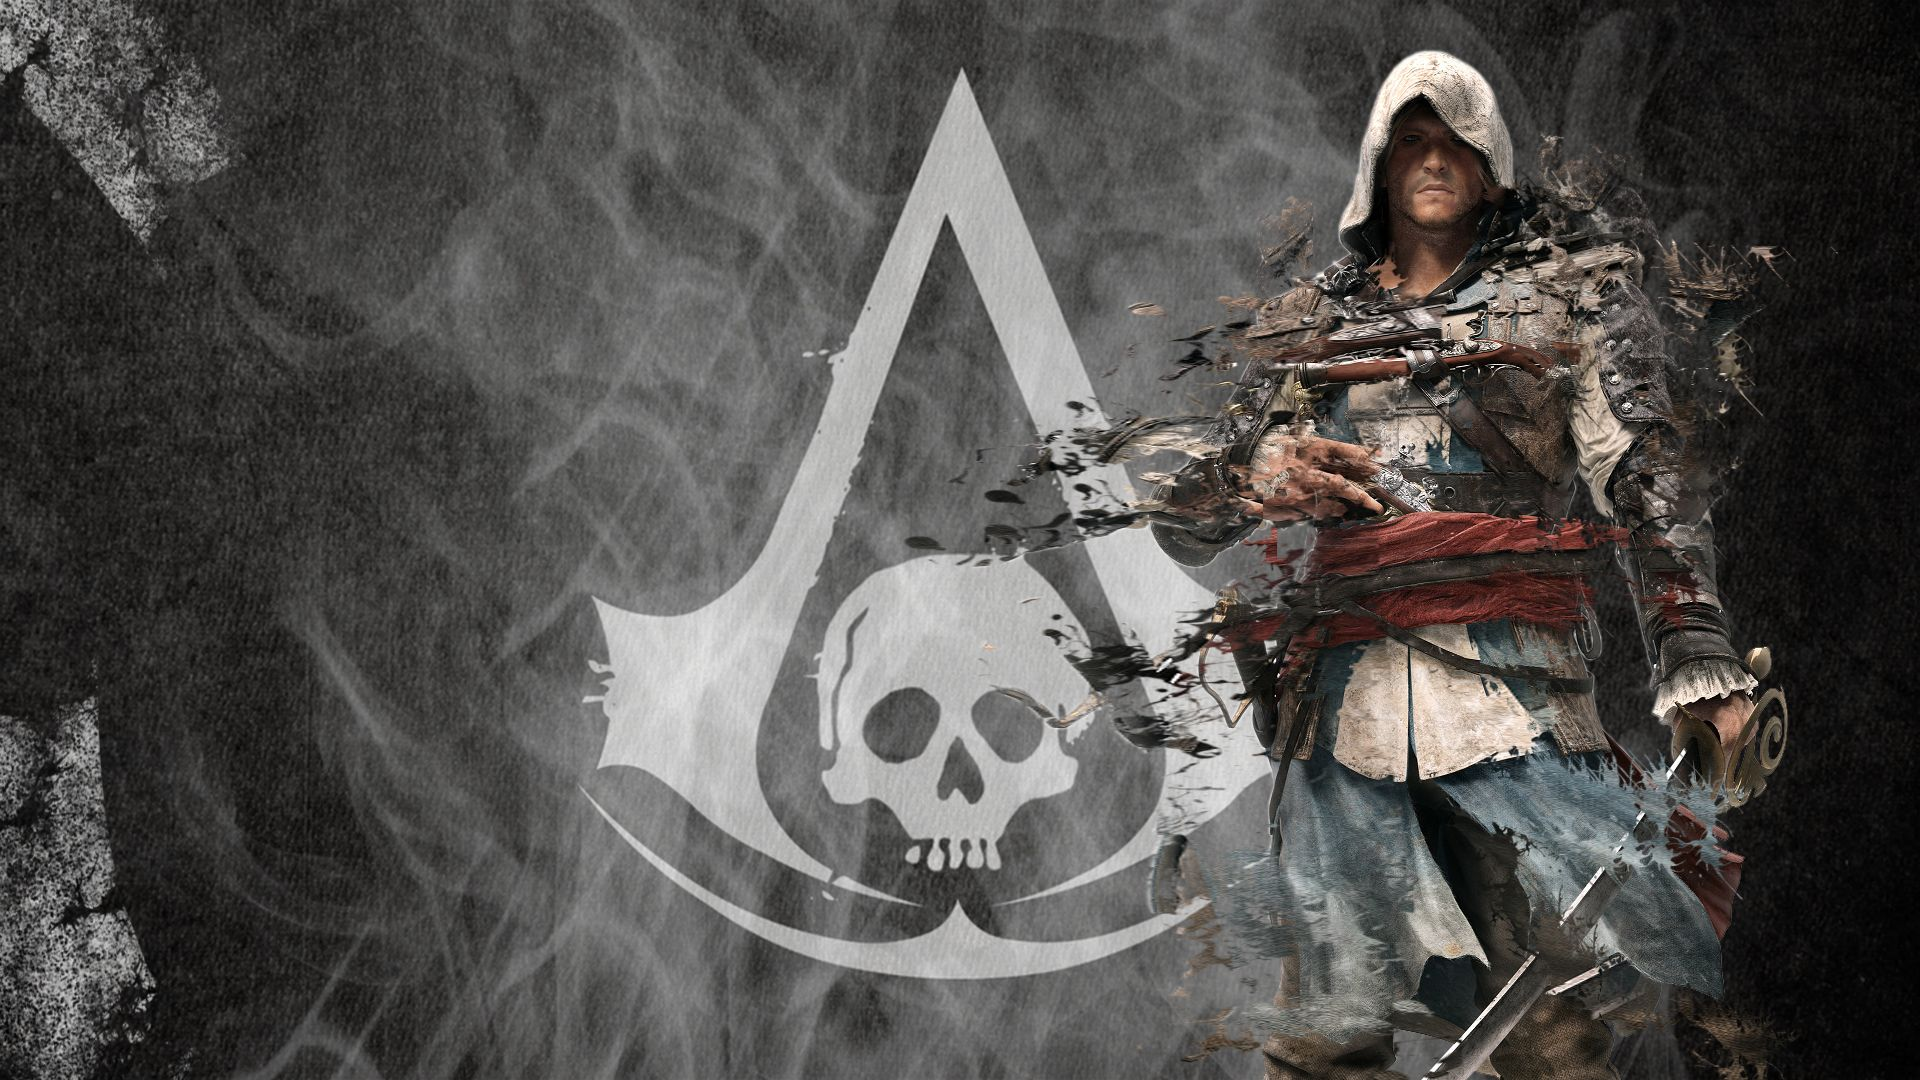 18 pic of assassin creed 4 in hd assassin creed 4 wallpaper voltagebd Choice Image